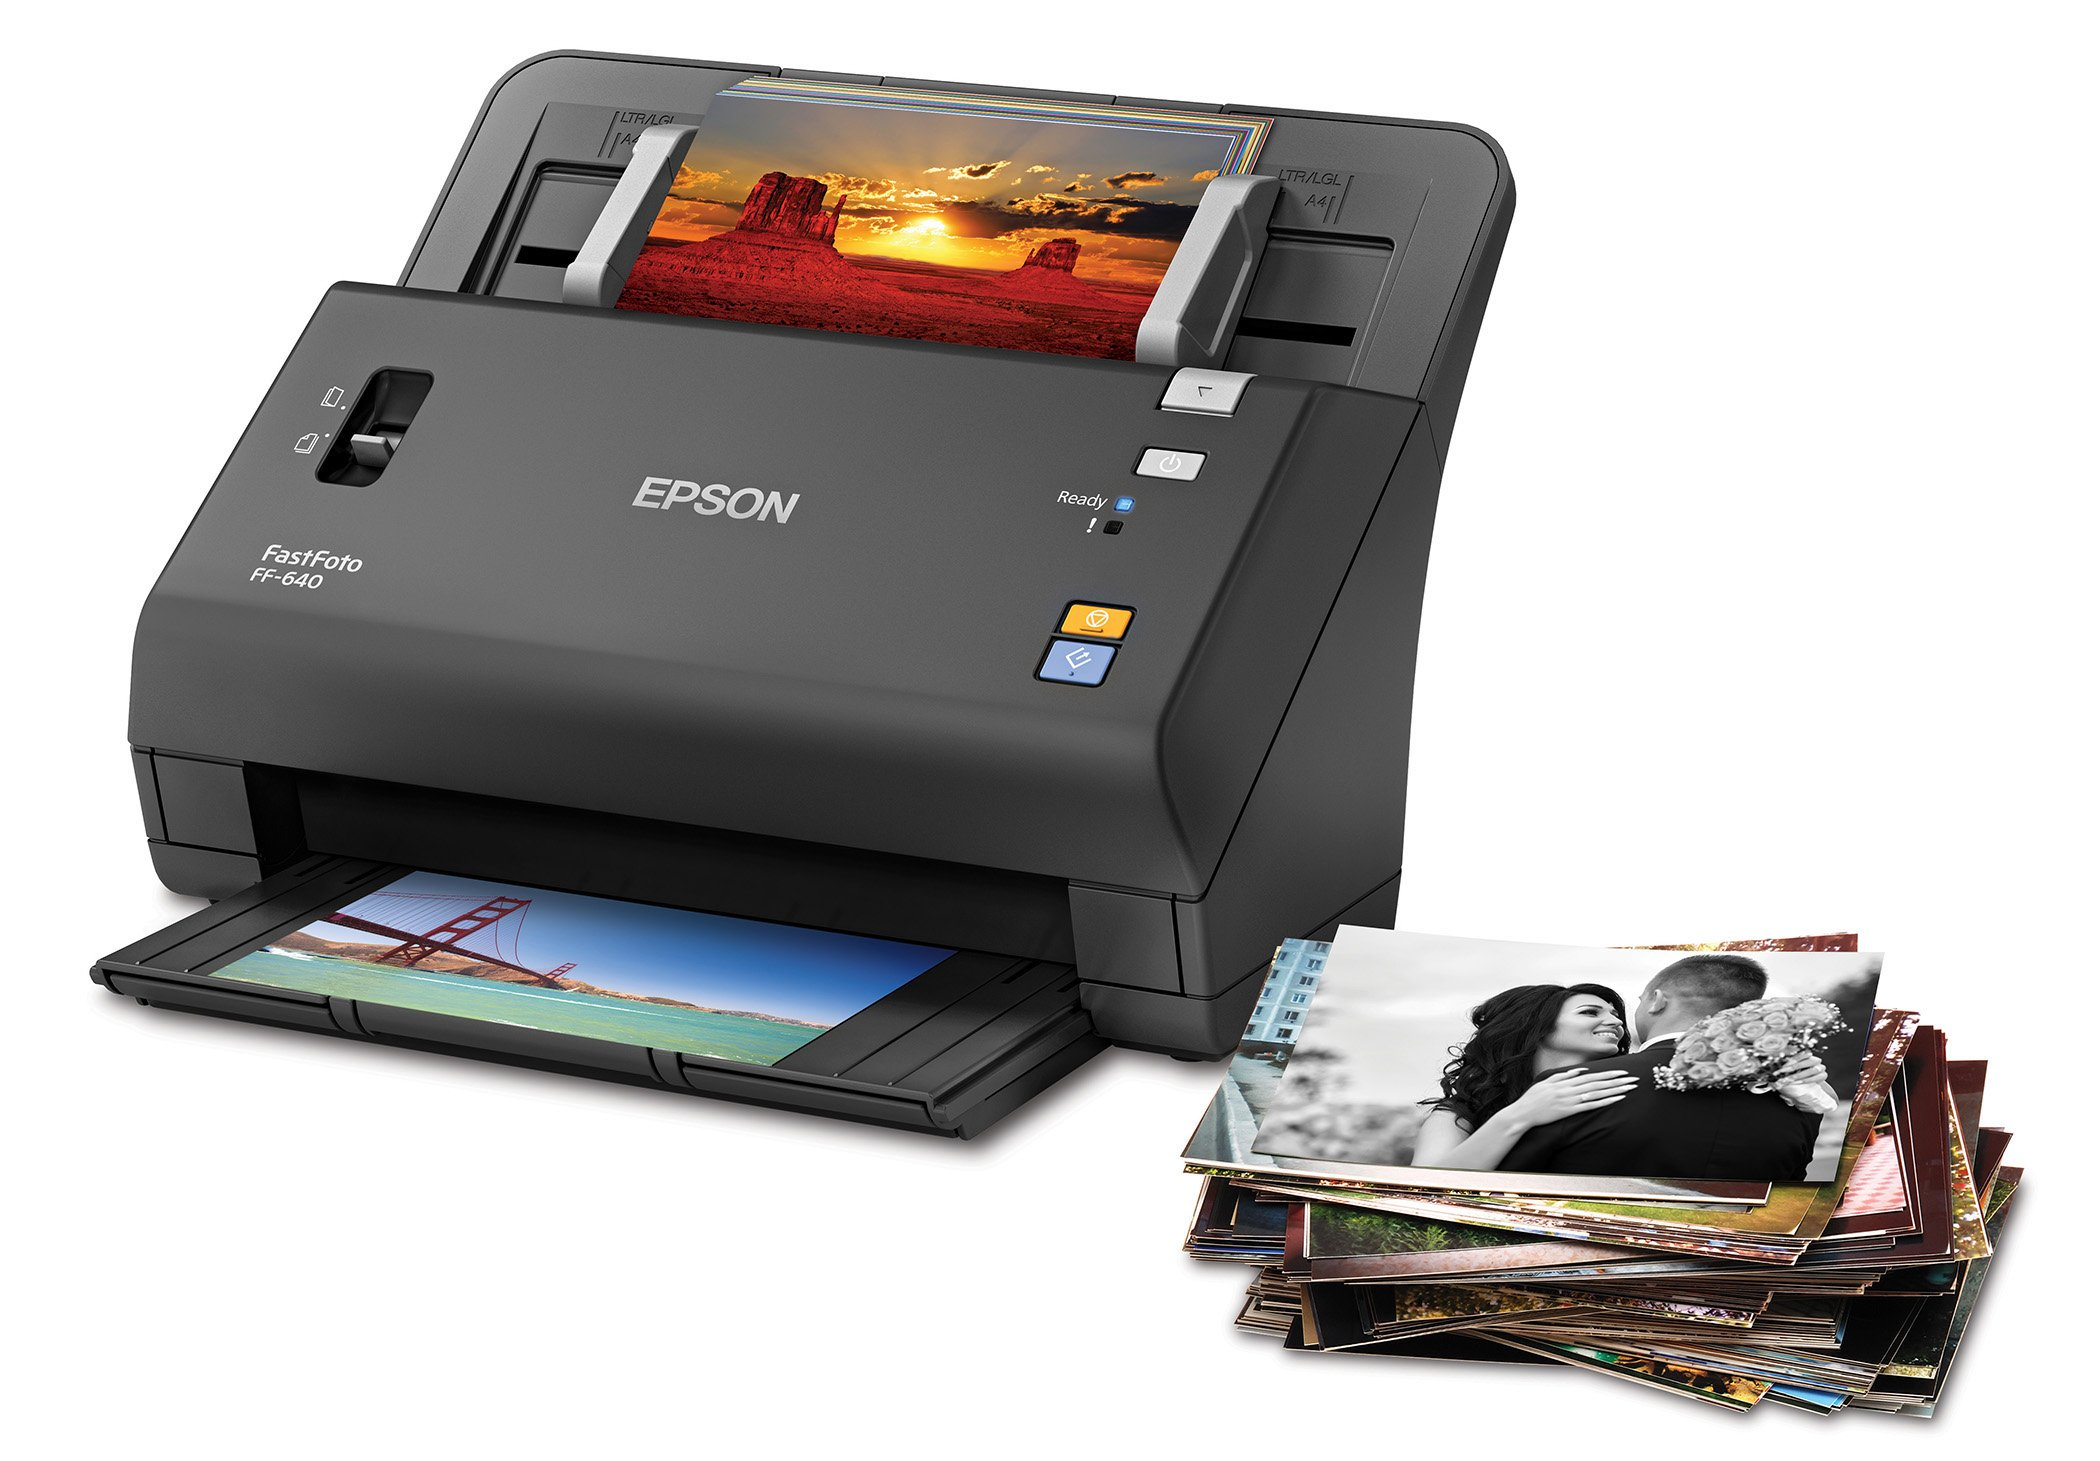 Epson FastFoto FF-640 High-Speed Photo Scanning System with Auto Photo Feeder by Epson (Image #5)